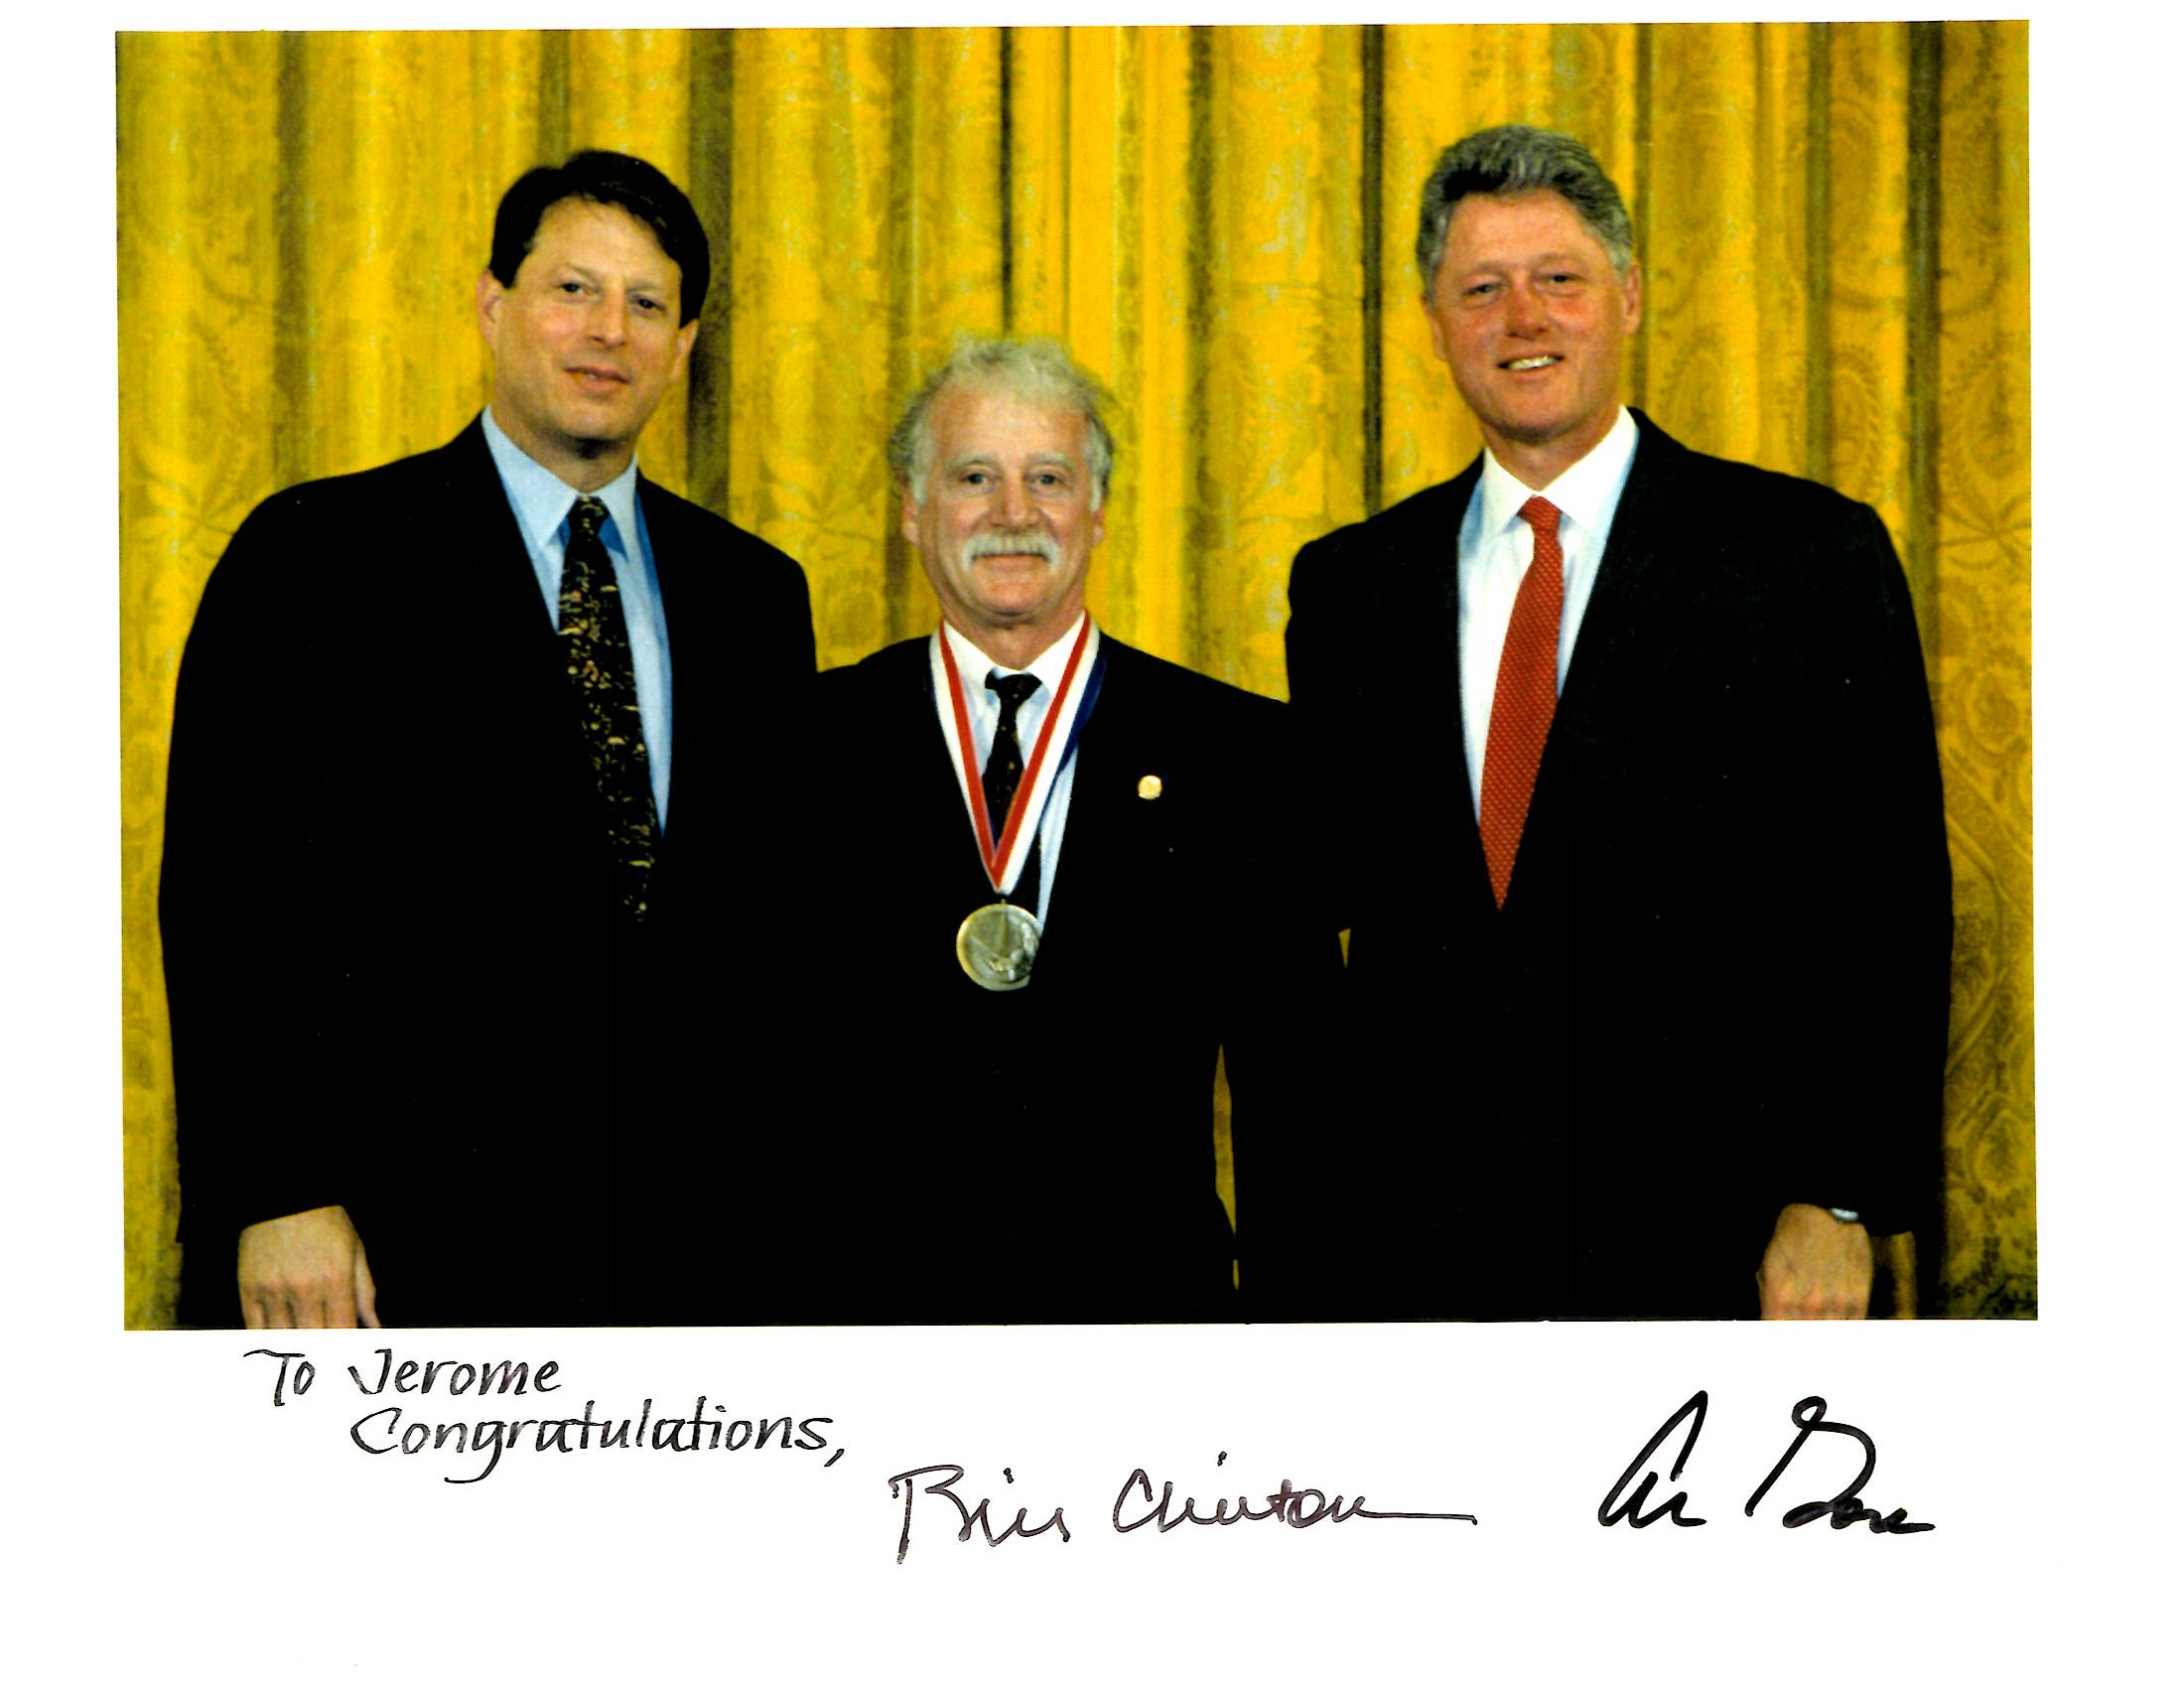 Dr. Jerry Cuomo getting the National Medal of Technology award from President Bill Clinton and Vice President Al Gore